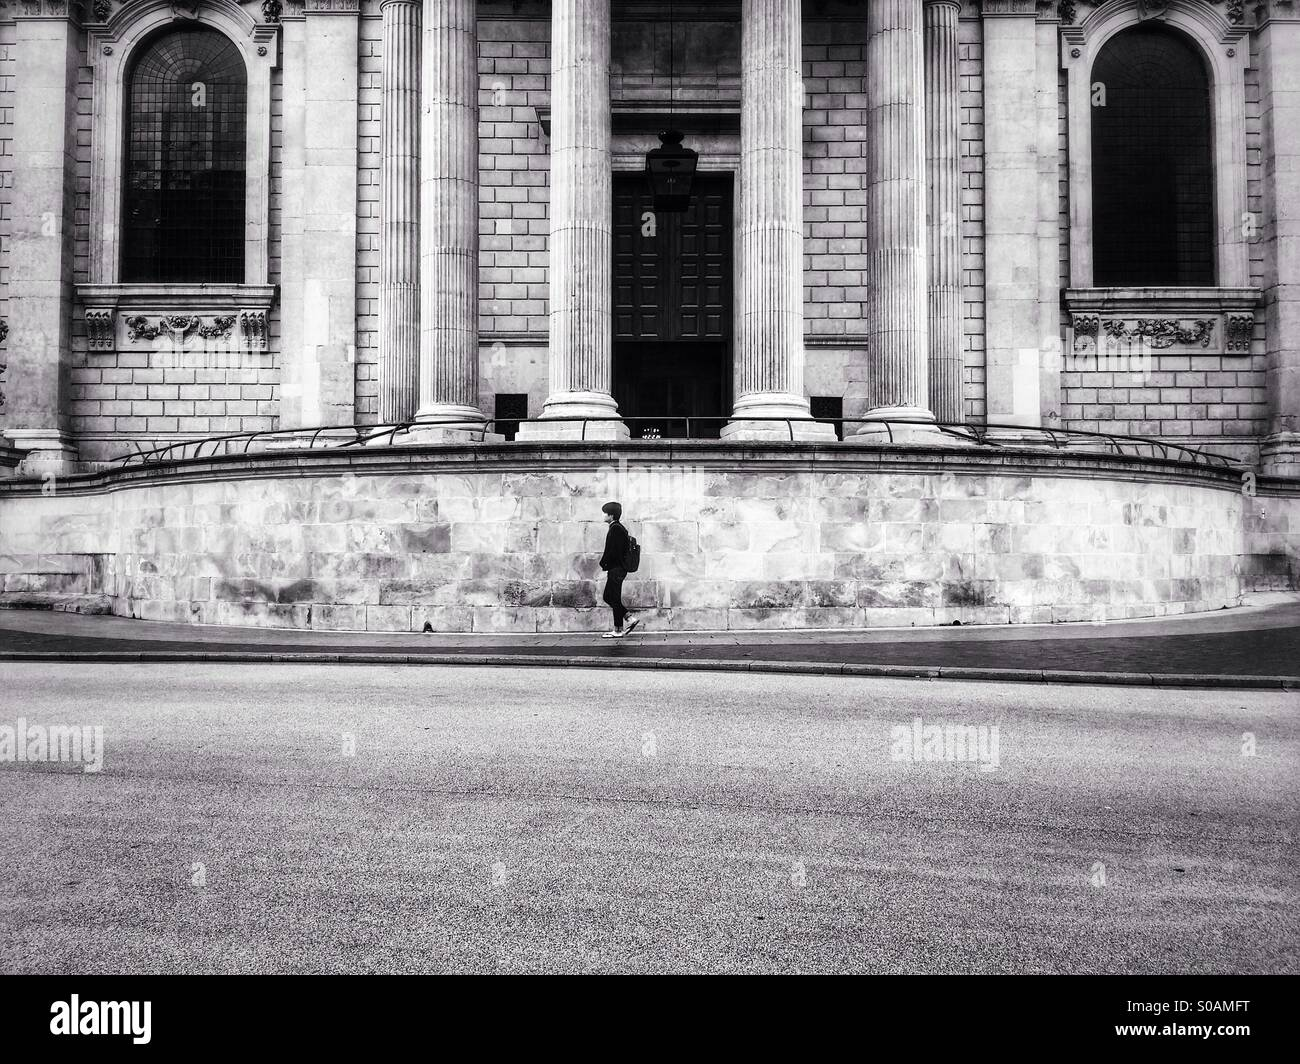 A man dressed in black walks past Saint Paul's Cathedral in London, England, UK. Stock Photo